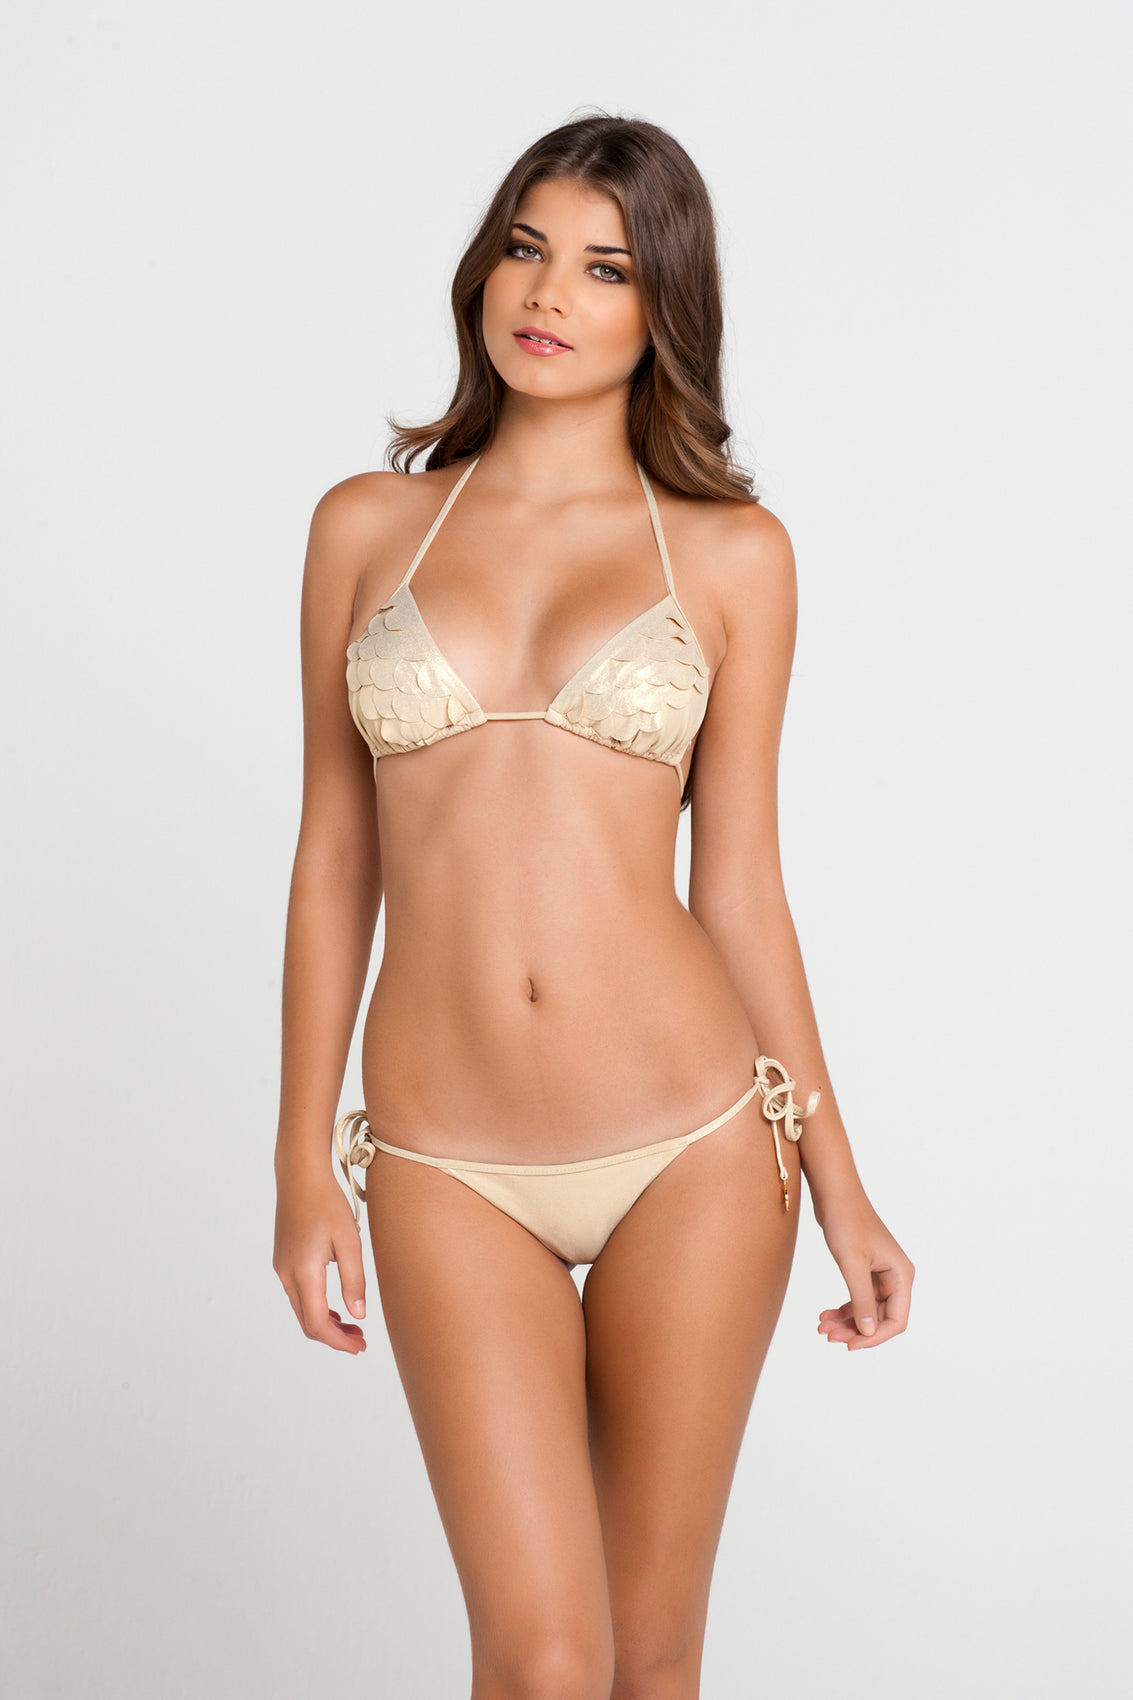 SI SOY SIRENA - Scalloped Triangle Top & Scalloped Back Brazilian Tie Side Bottom • Gold Rush (862757290028)